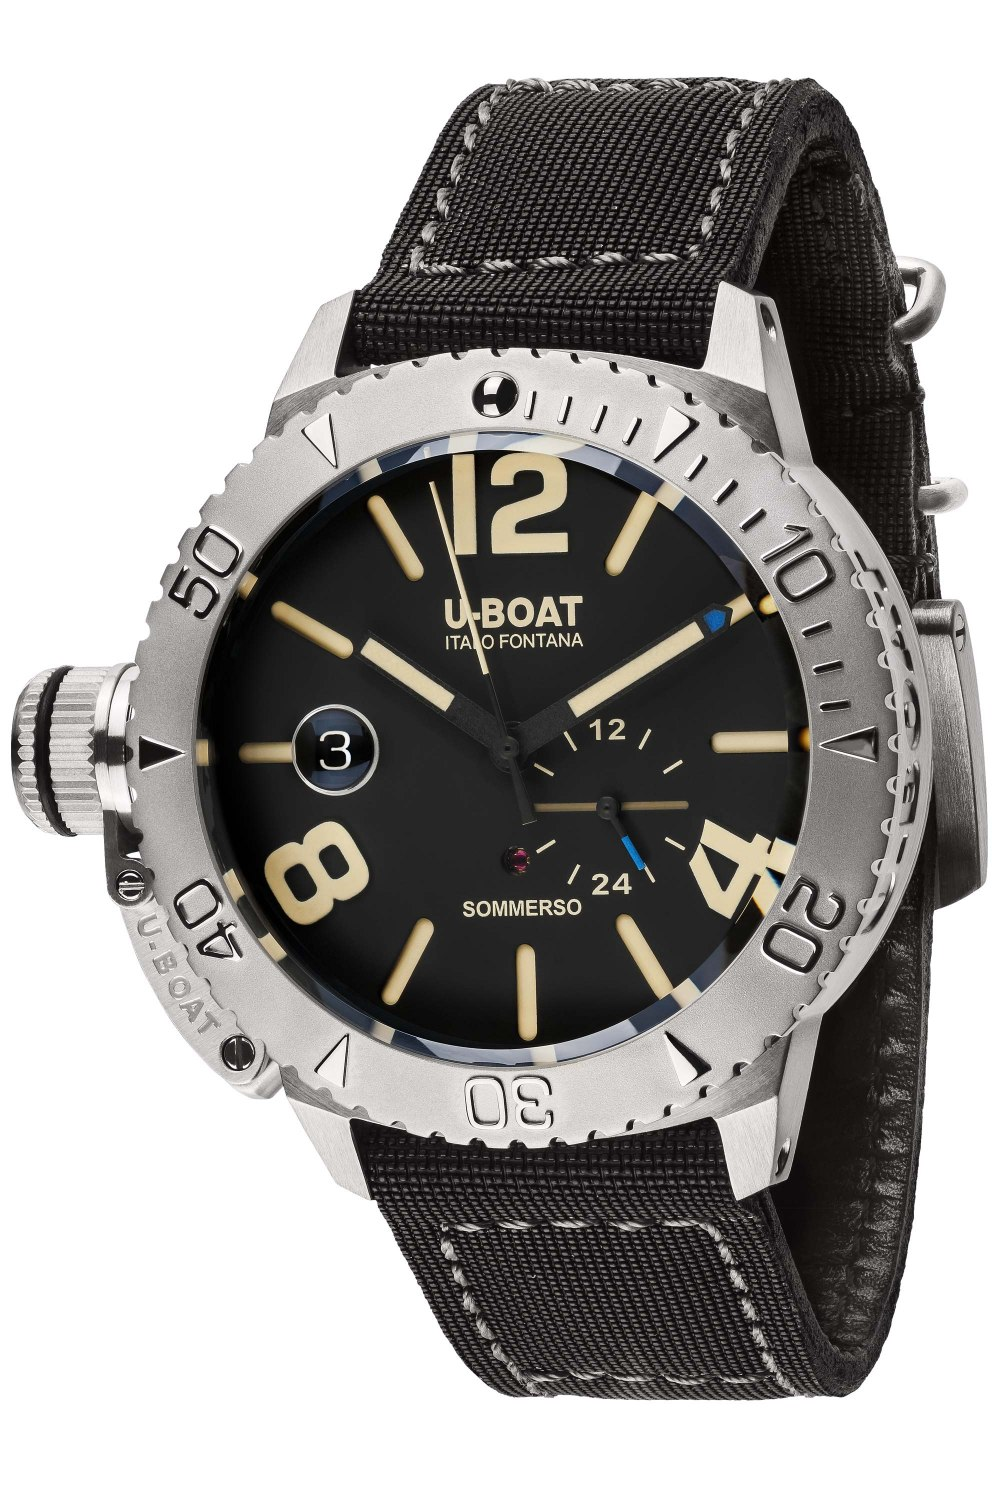 U-BOAT Sommerso 9007